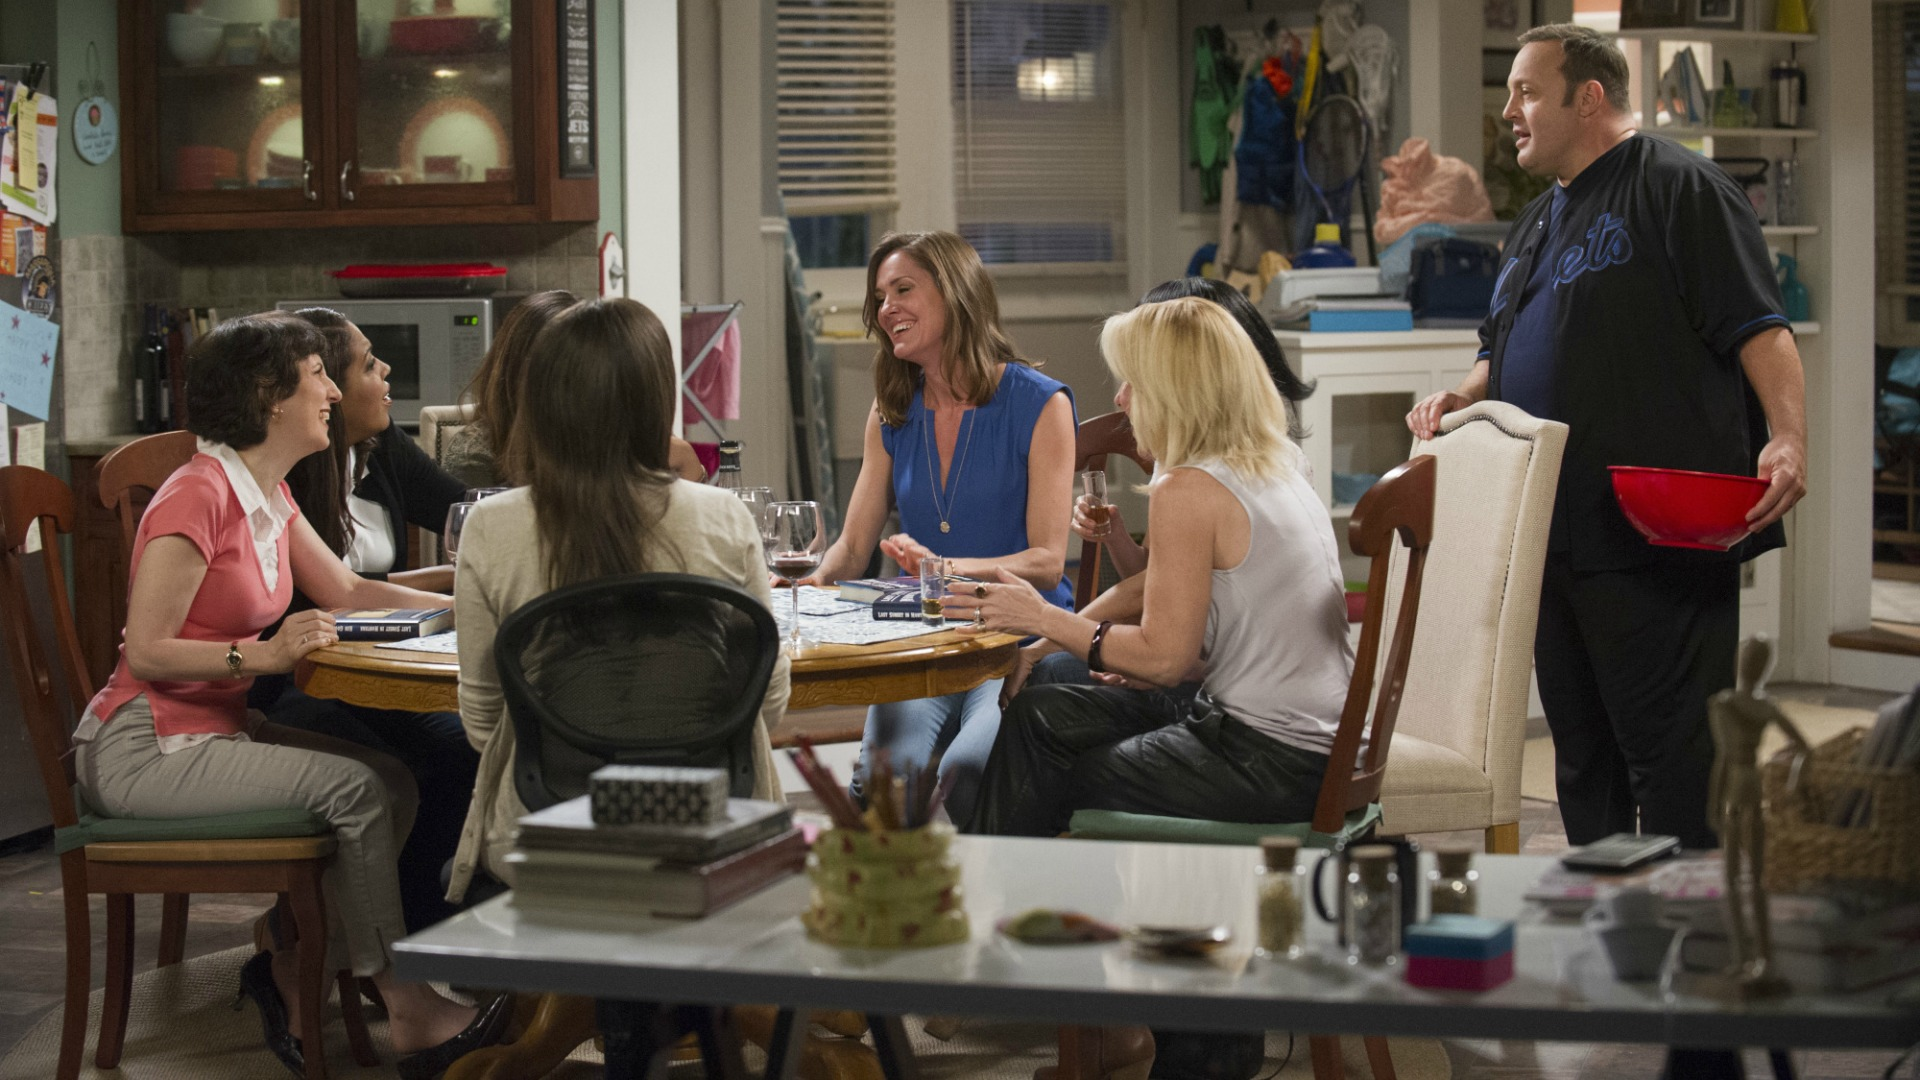 Kevin walks in on Donna's book club after hearing the ladies' laughter.